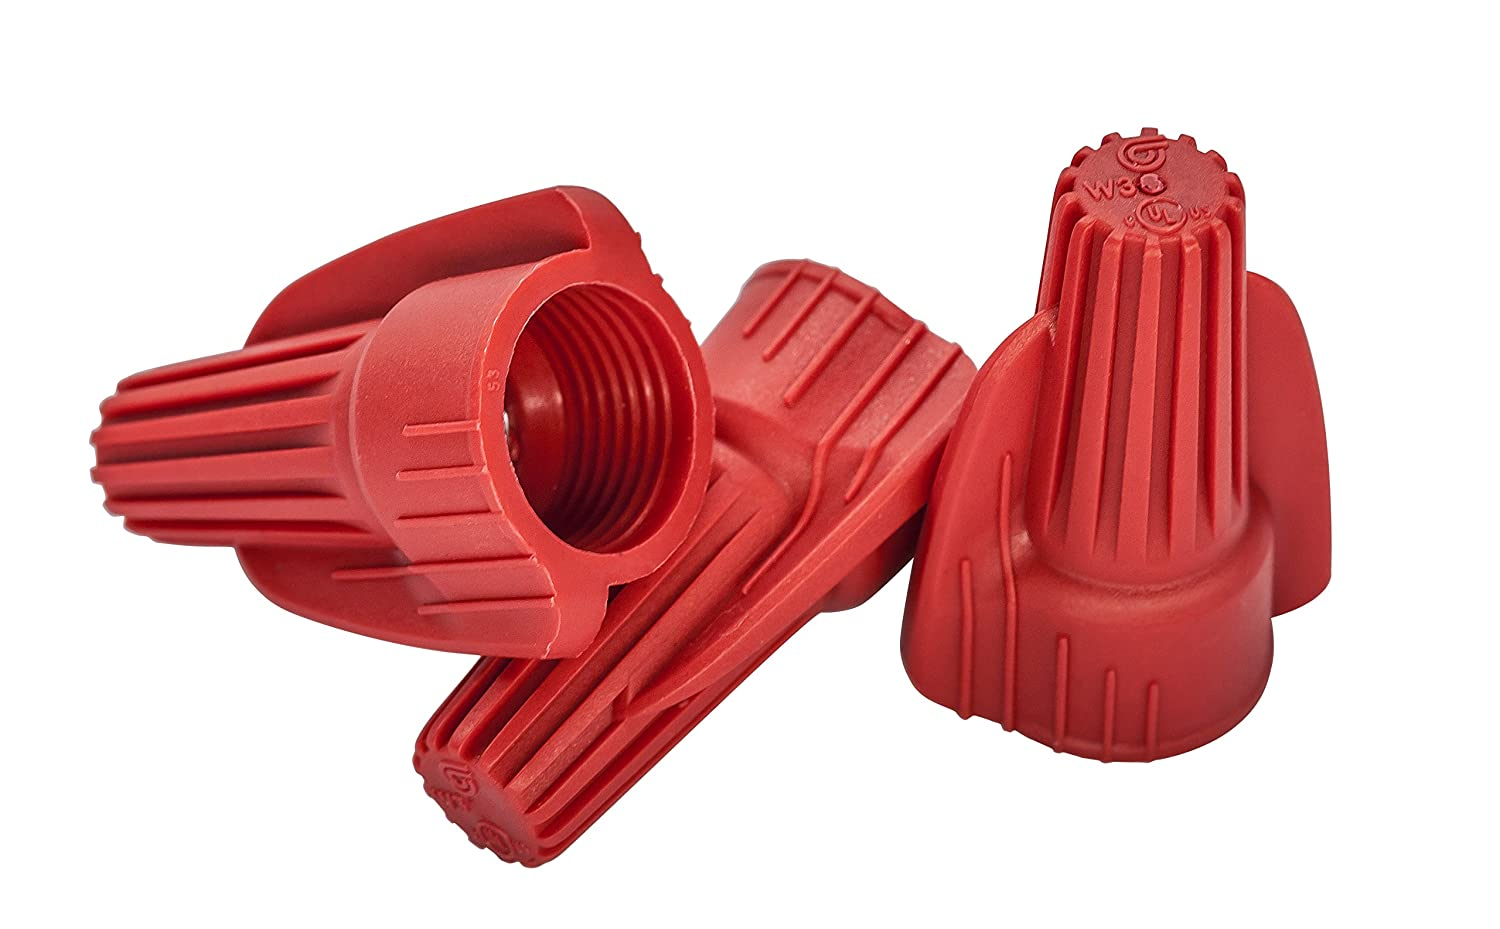 Cambridge Screw On Wire Connectors Red 100 Pieces per Box Contains 2 Boxes 200 Pieces Total